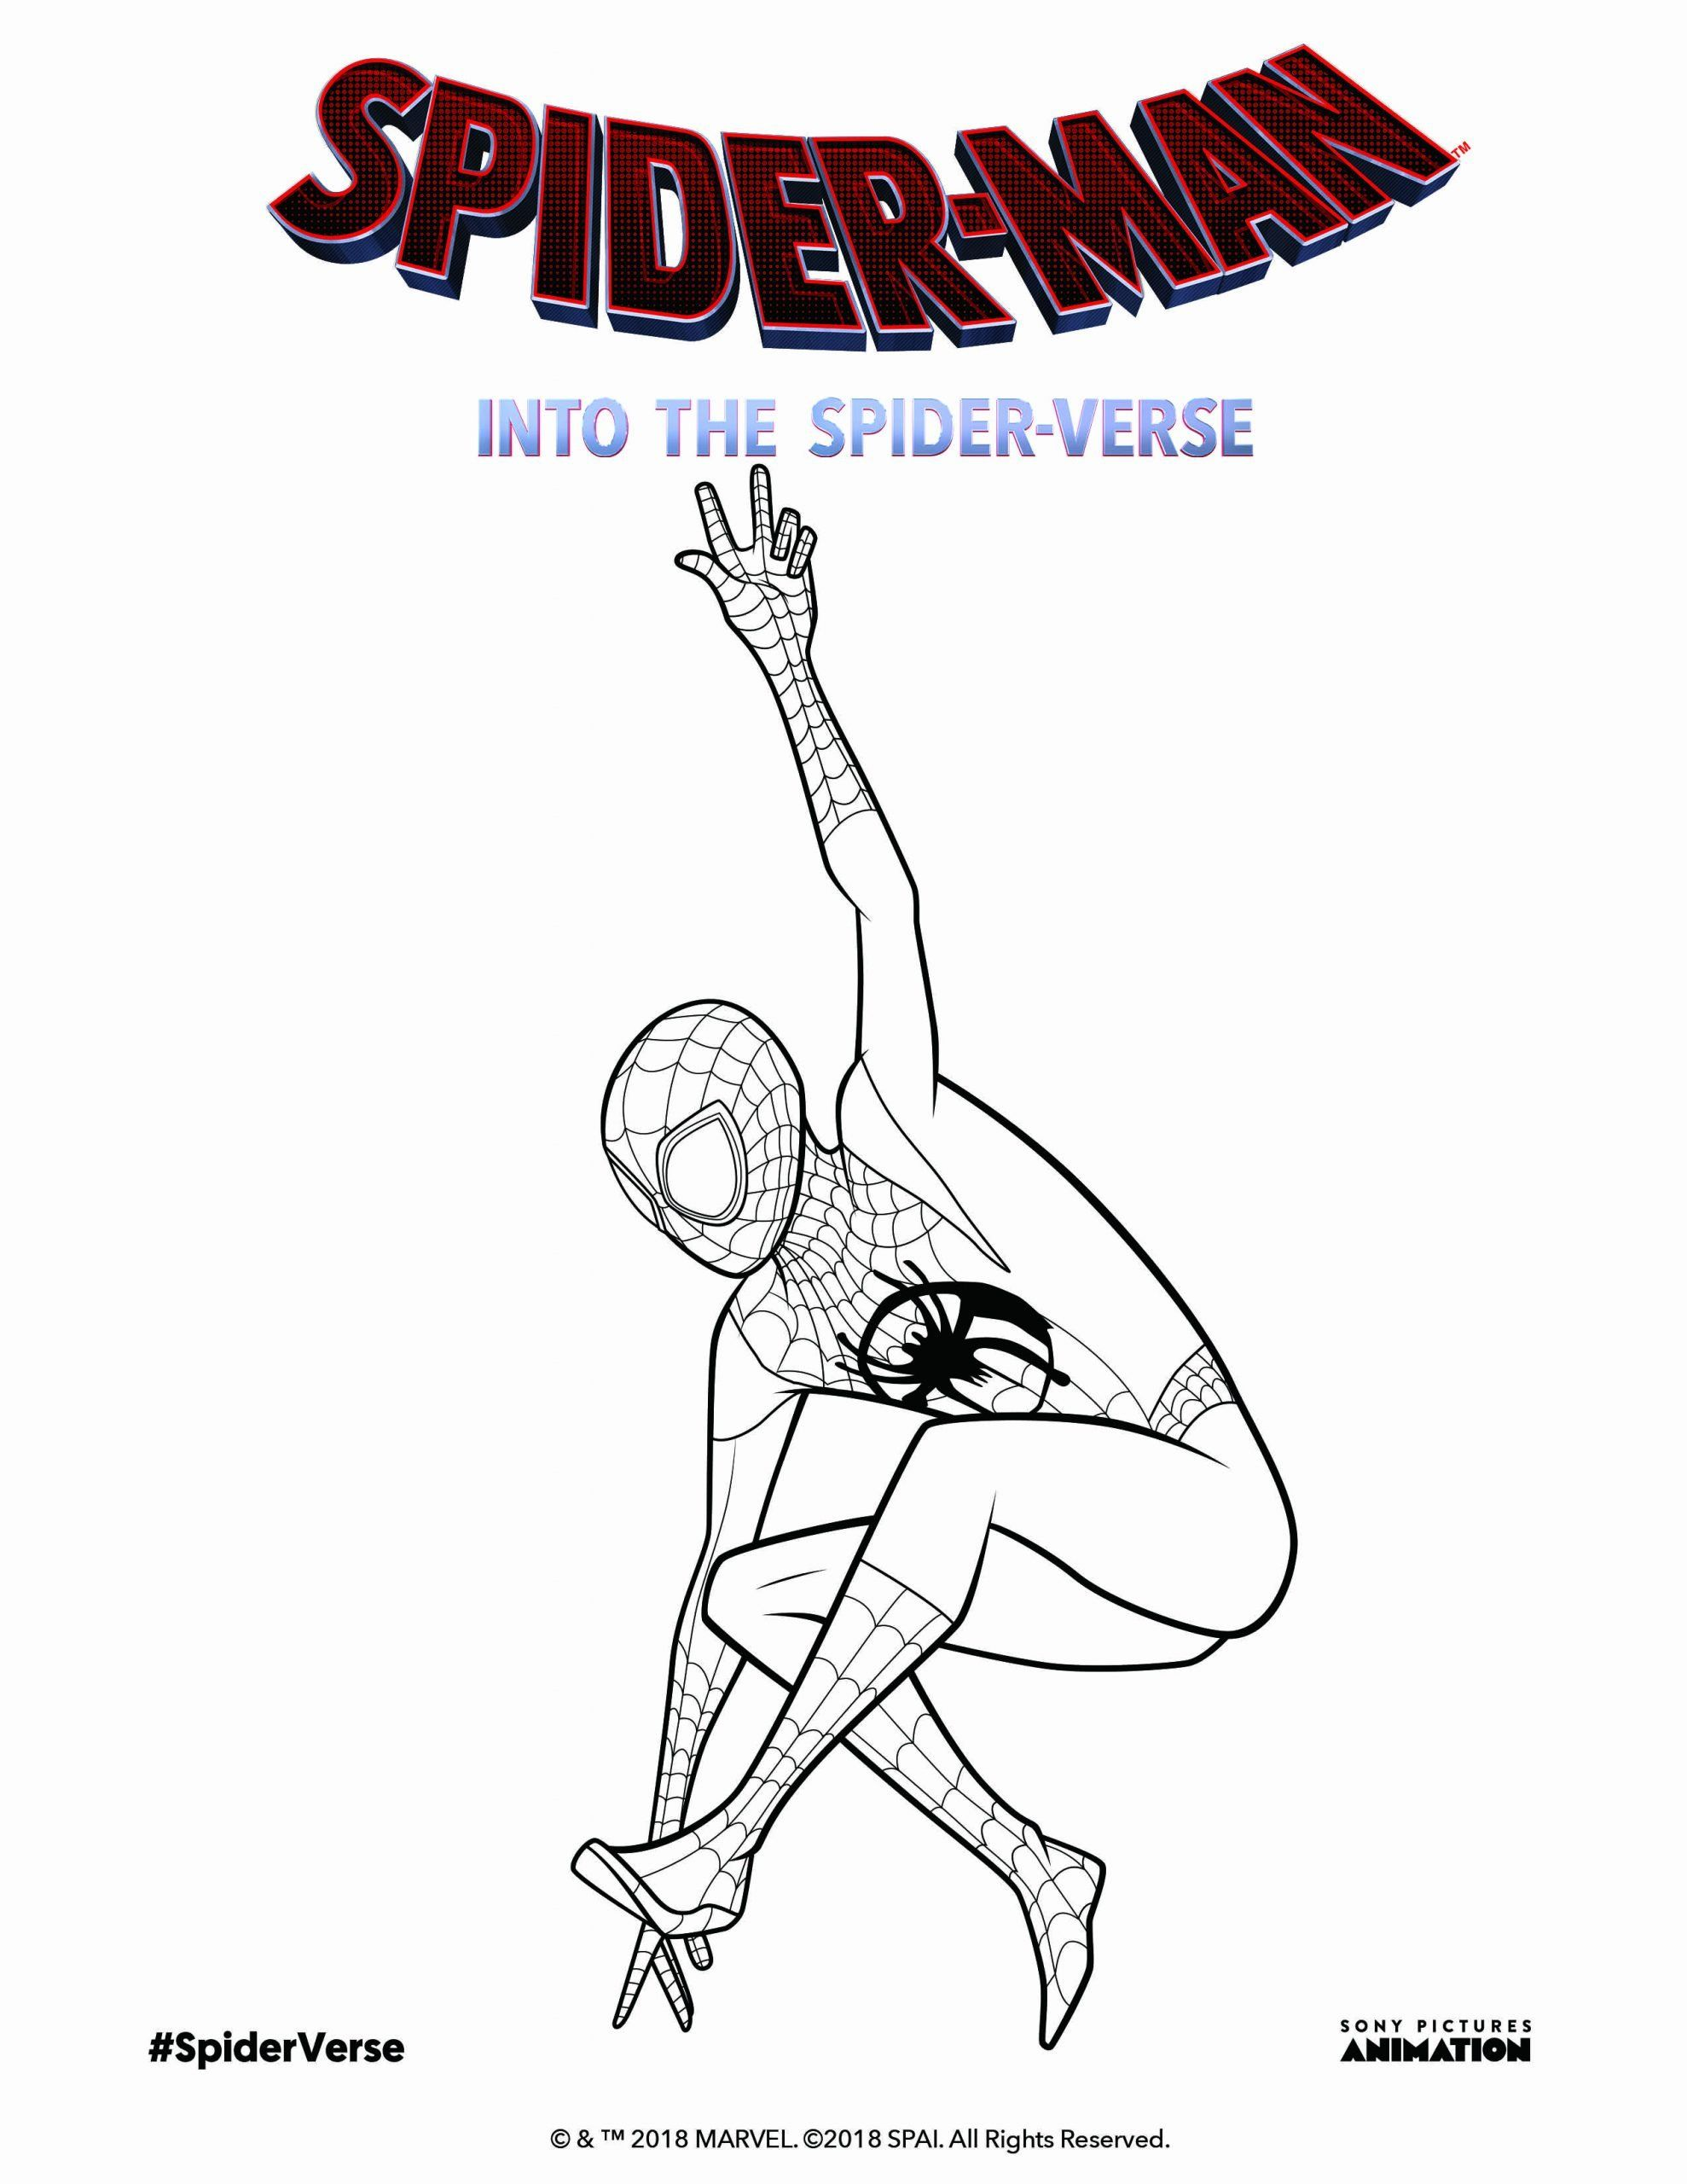 Miles Morales Coloring Page Unique Get Ready For Spiderman Into The Spiderverse By Coloring Spiderman Coloring Avengers Coloring Pages Miles Morales Spiderman